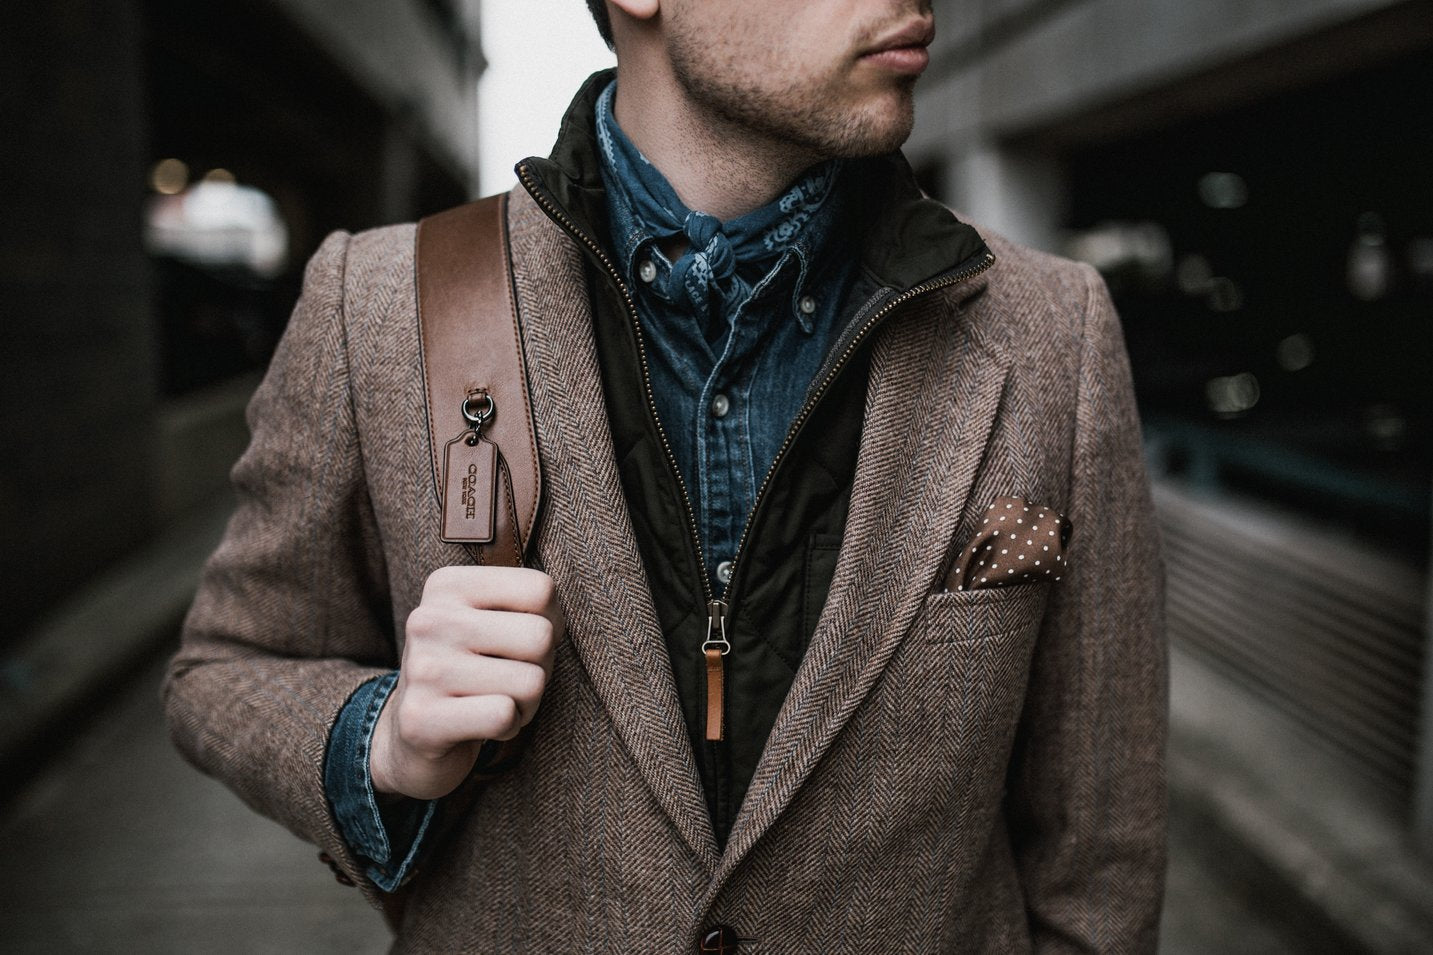 stylish man in a  business casual outfit  accessorizing with a modern pocket square, bandana, and leather backpack